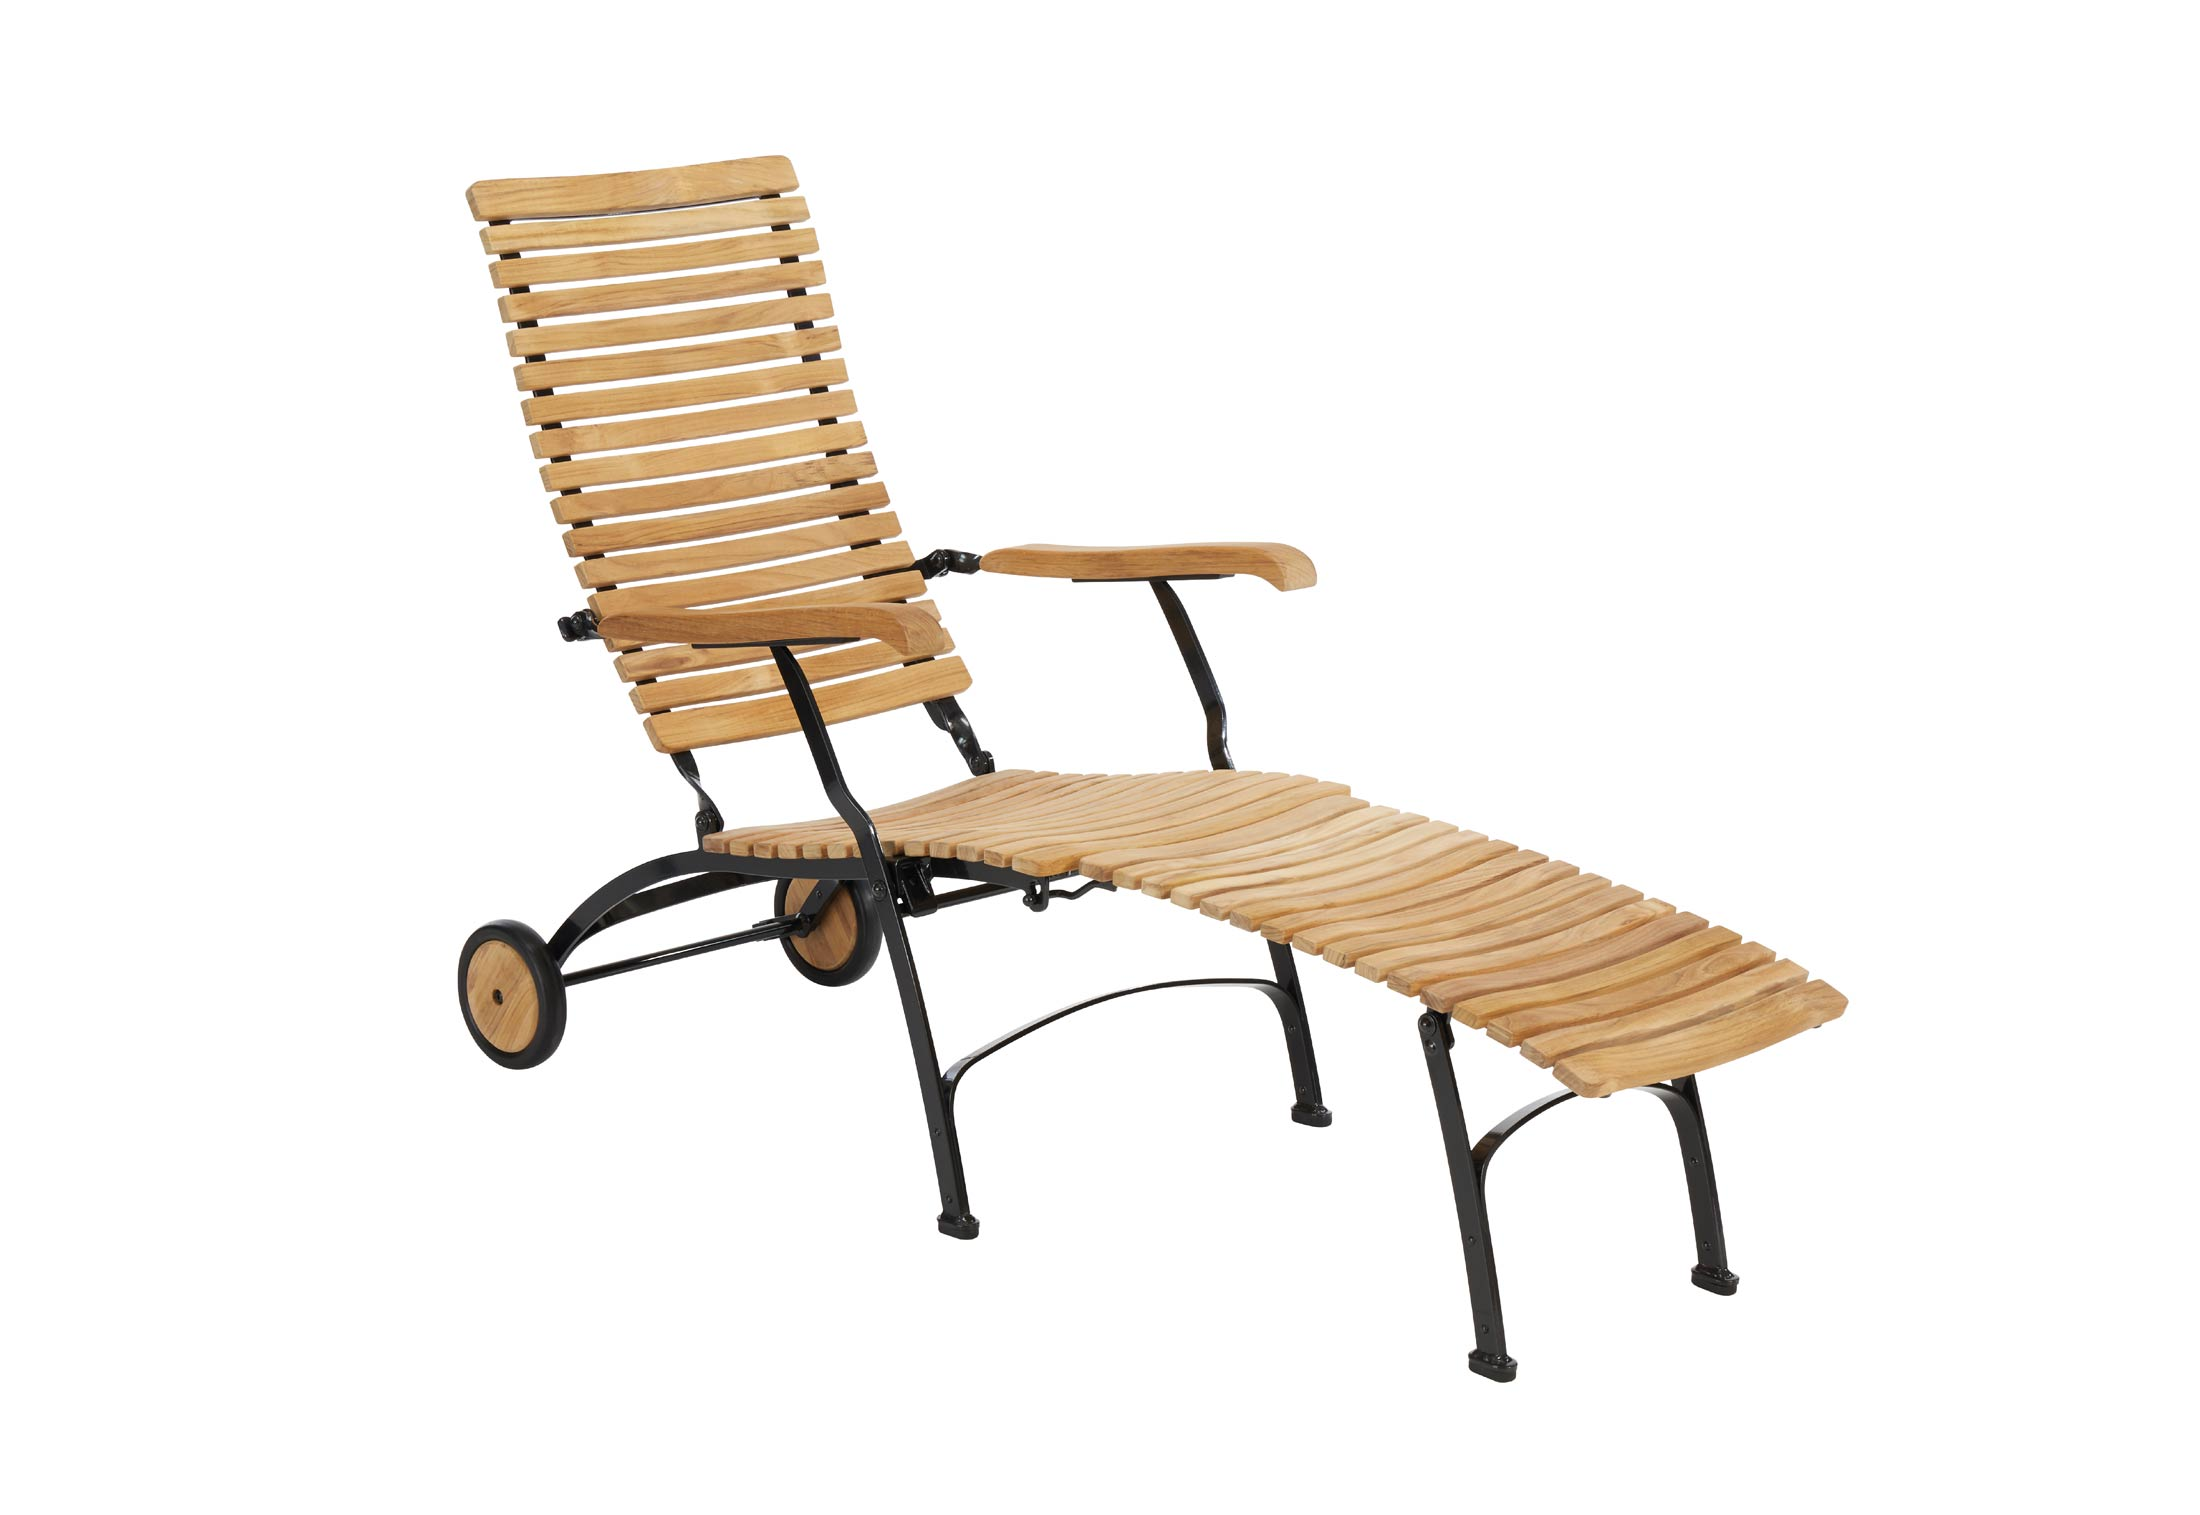 Fontenay Deck Chair by Garpa